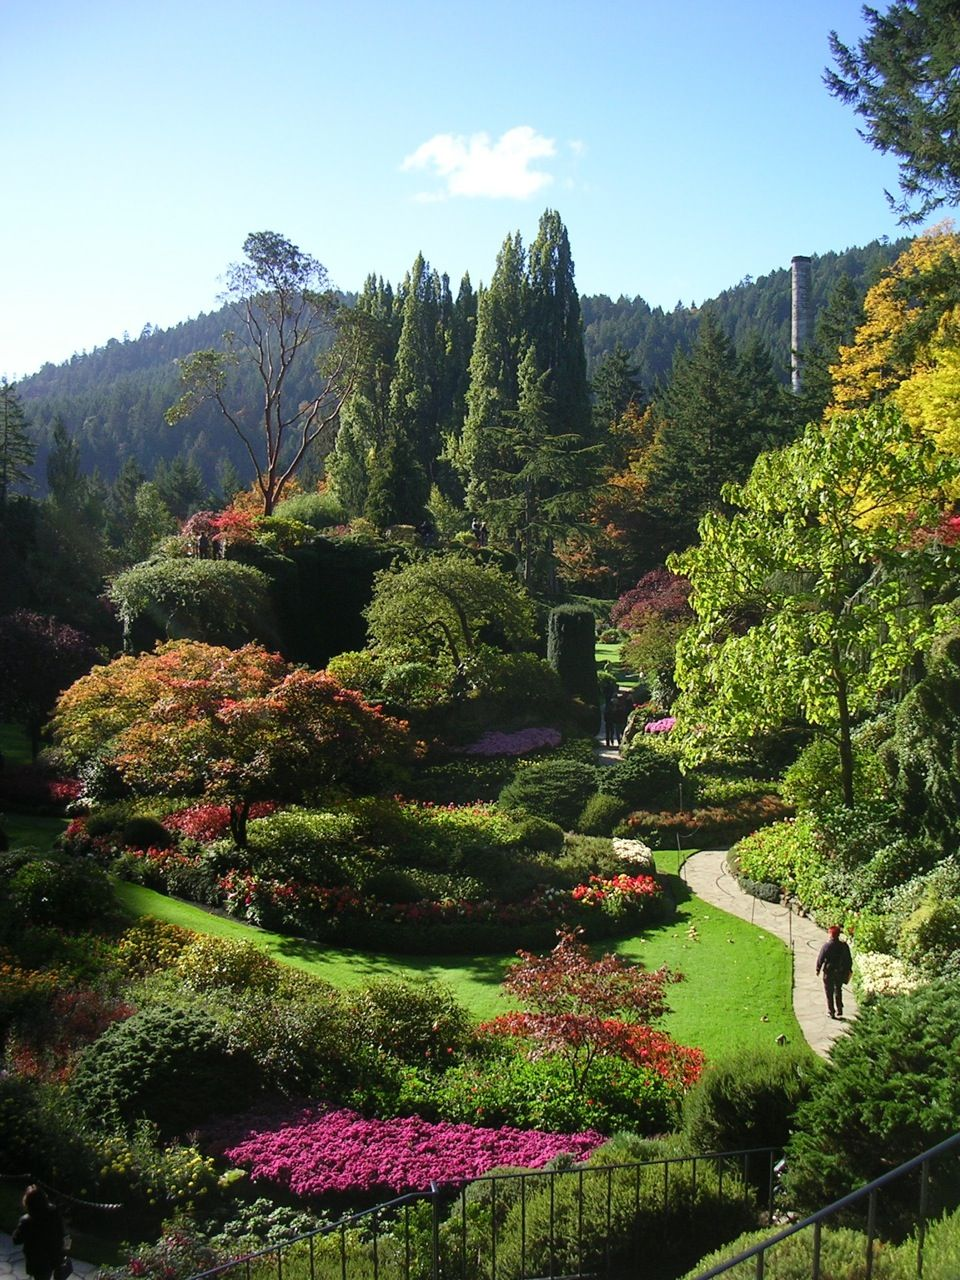 Butchart Gardens in Victoria, Vancouver Island, British